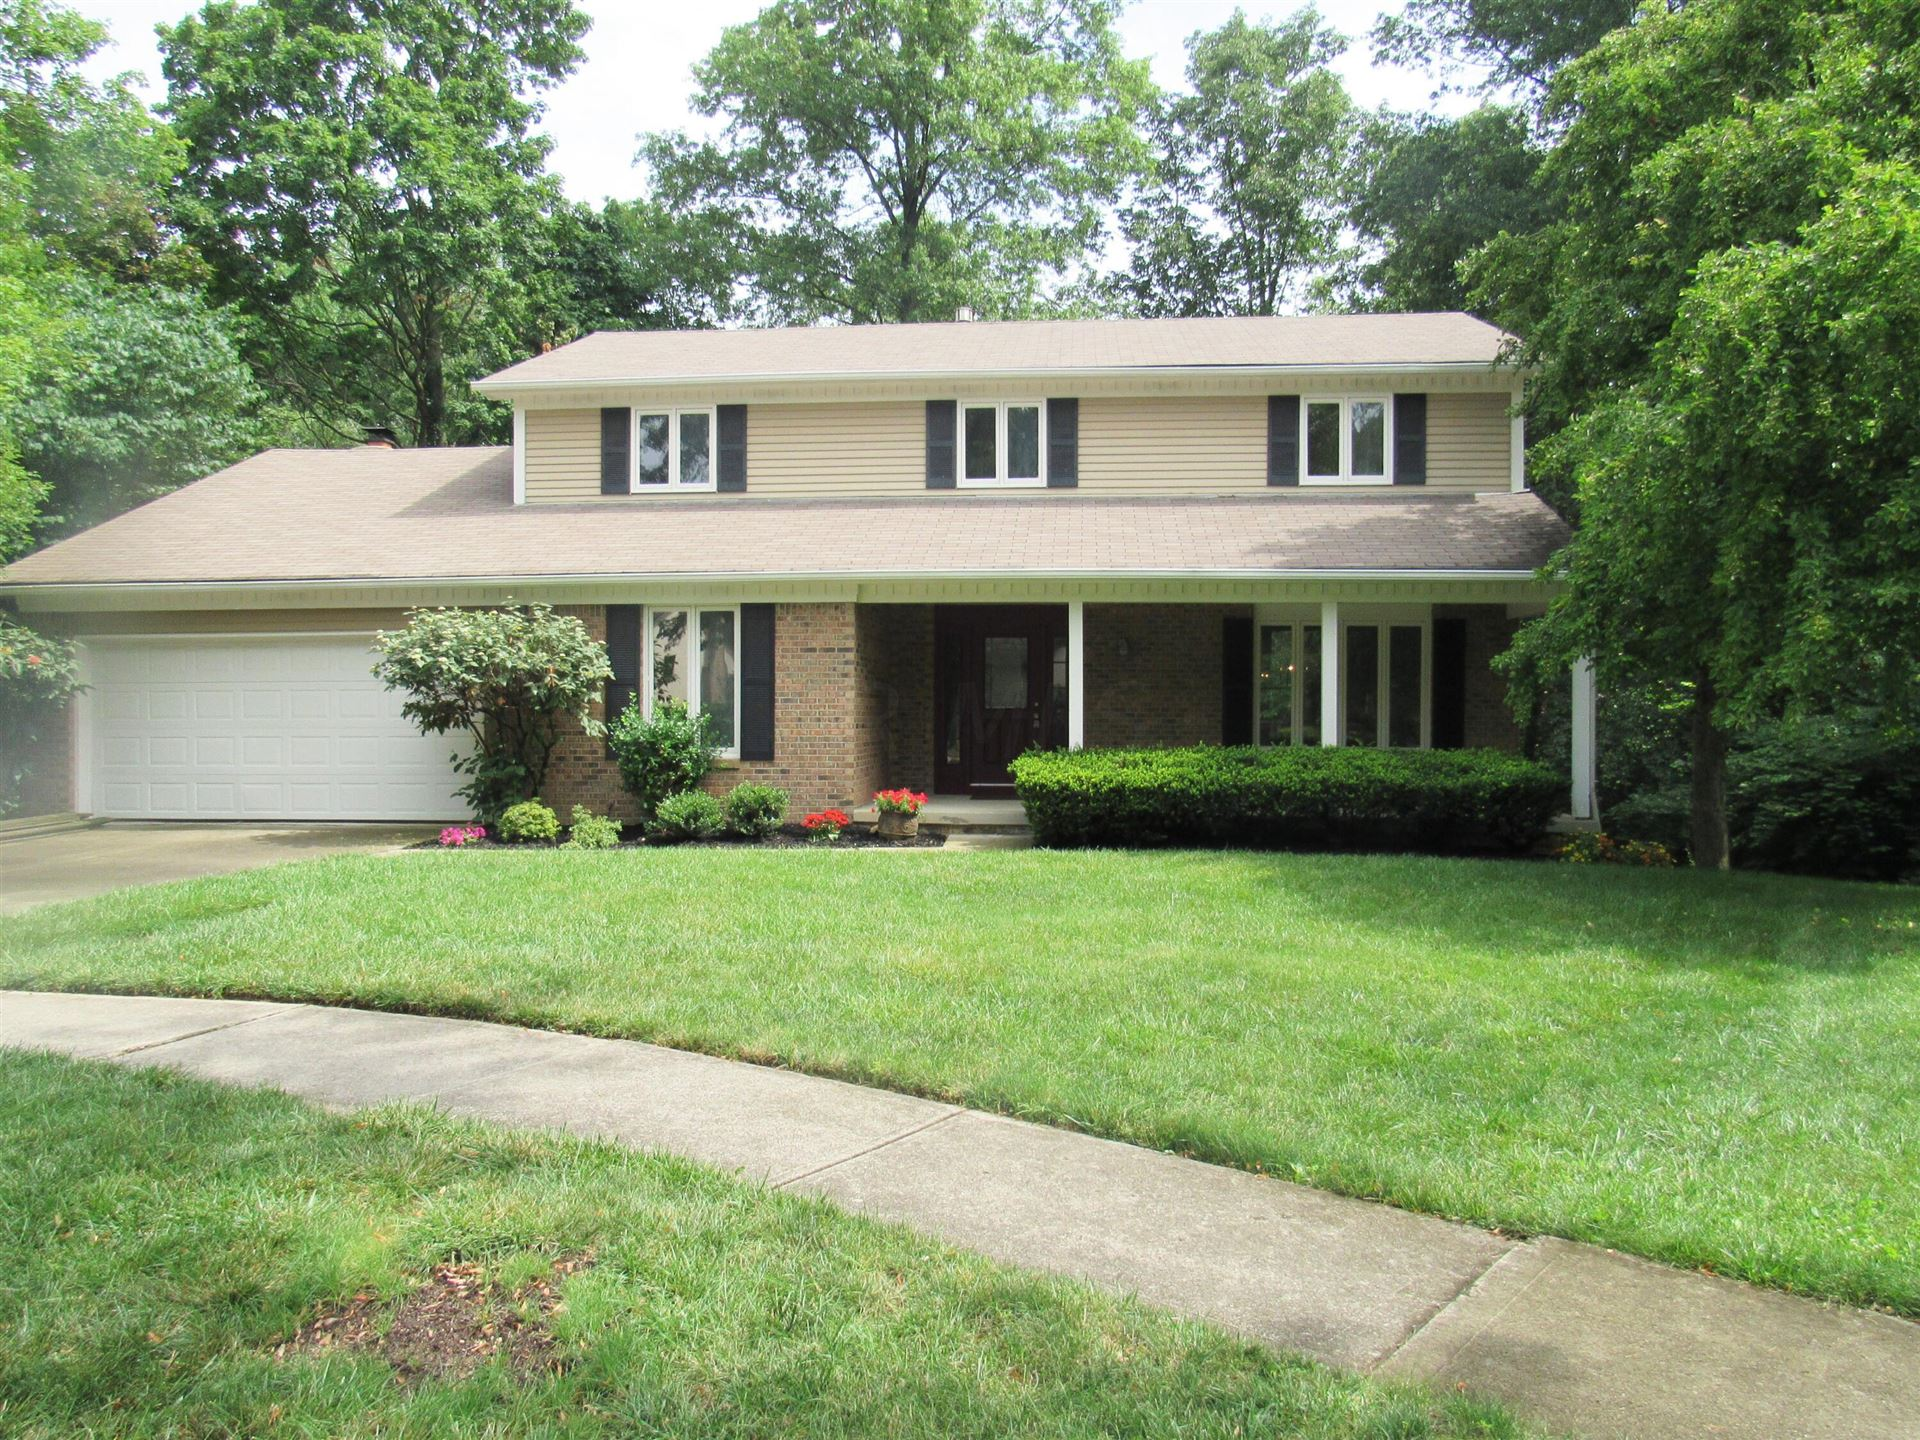 Photo of 1592 Fawn Court, Worthington, OH 43085 (MLS # 221028001)